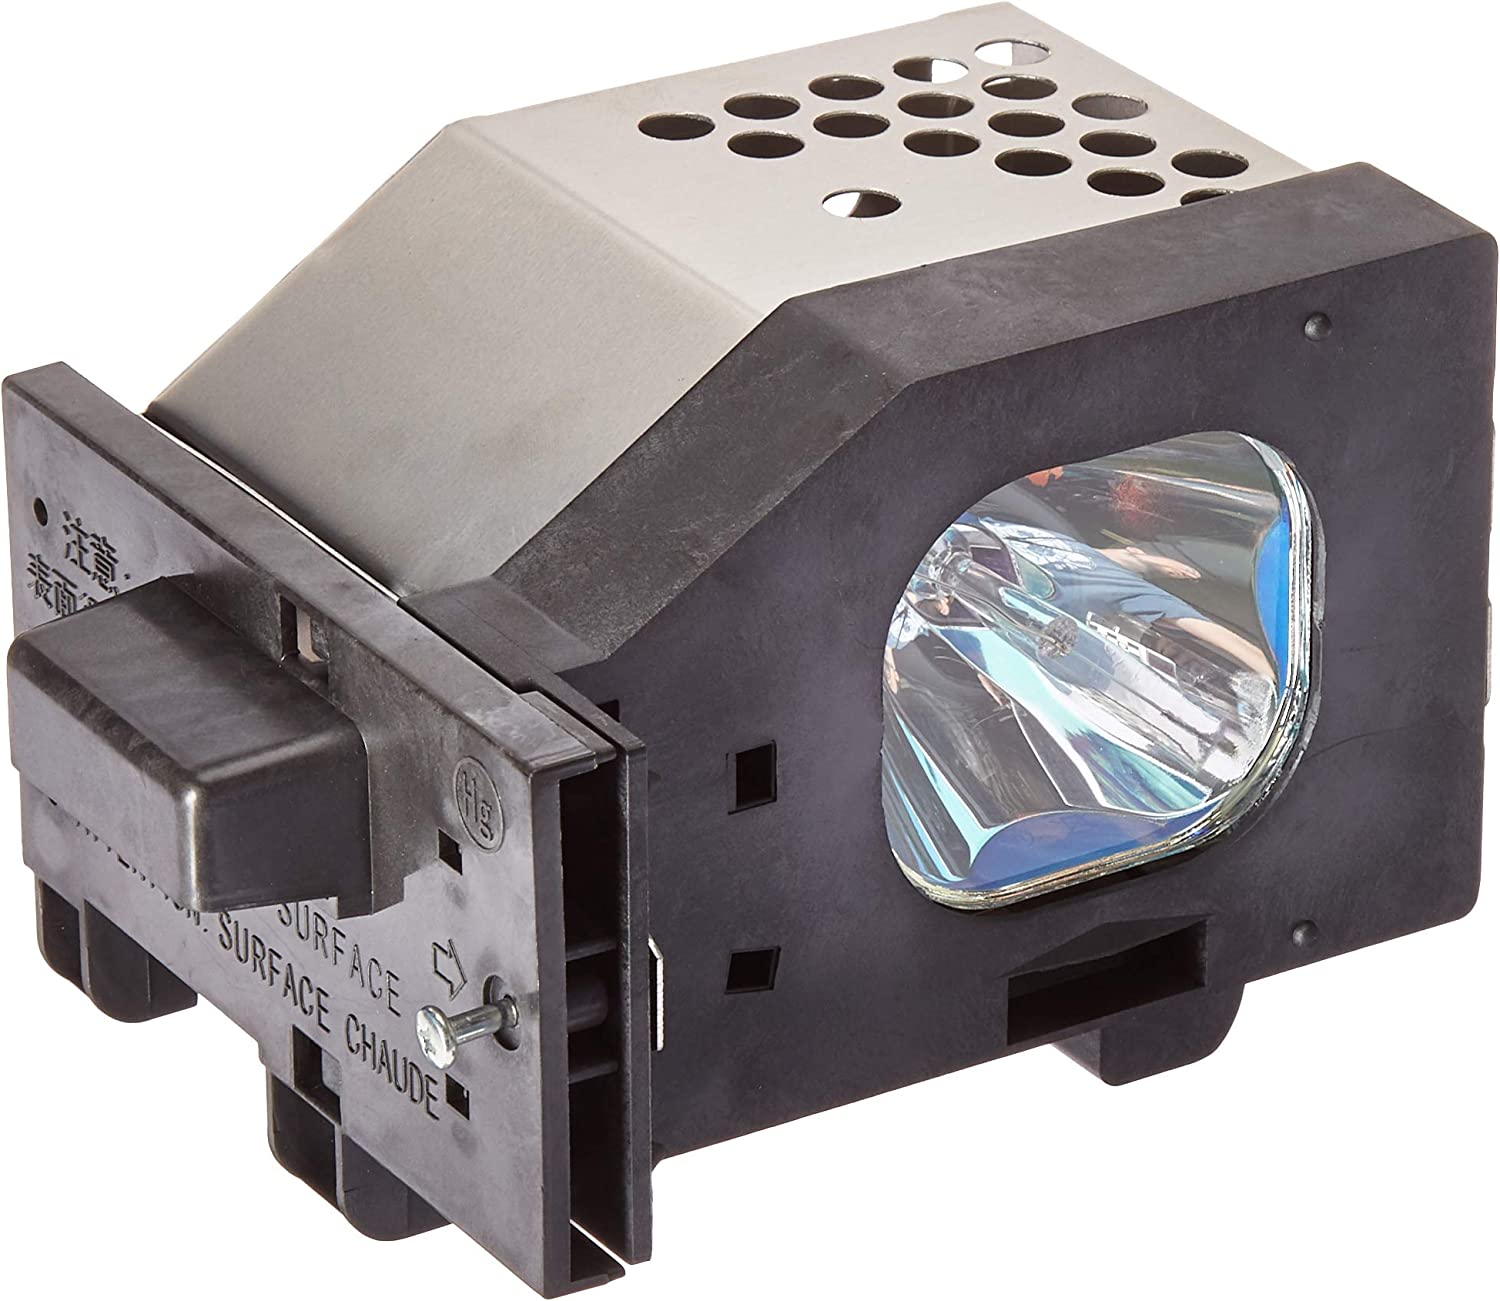 100% BRAND NEW OEM EQUIVALENT TY-LA1000 PROJECTOR / TV LAMP WITH HOUSING FOR Panasonic PT43LC14 / PT43LCX64 / PT43LCX65 / PT50LC13 / PT50LC13-K / PT50LC14 / PT50LCX63 / PT50LCX64 / PT52LCX15 / PT52LCX15B / PT52LCX65 / PT60LC13 / PT60LC14 / PT60LCX63 / PT6